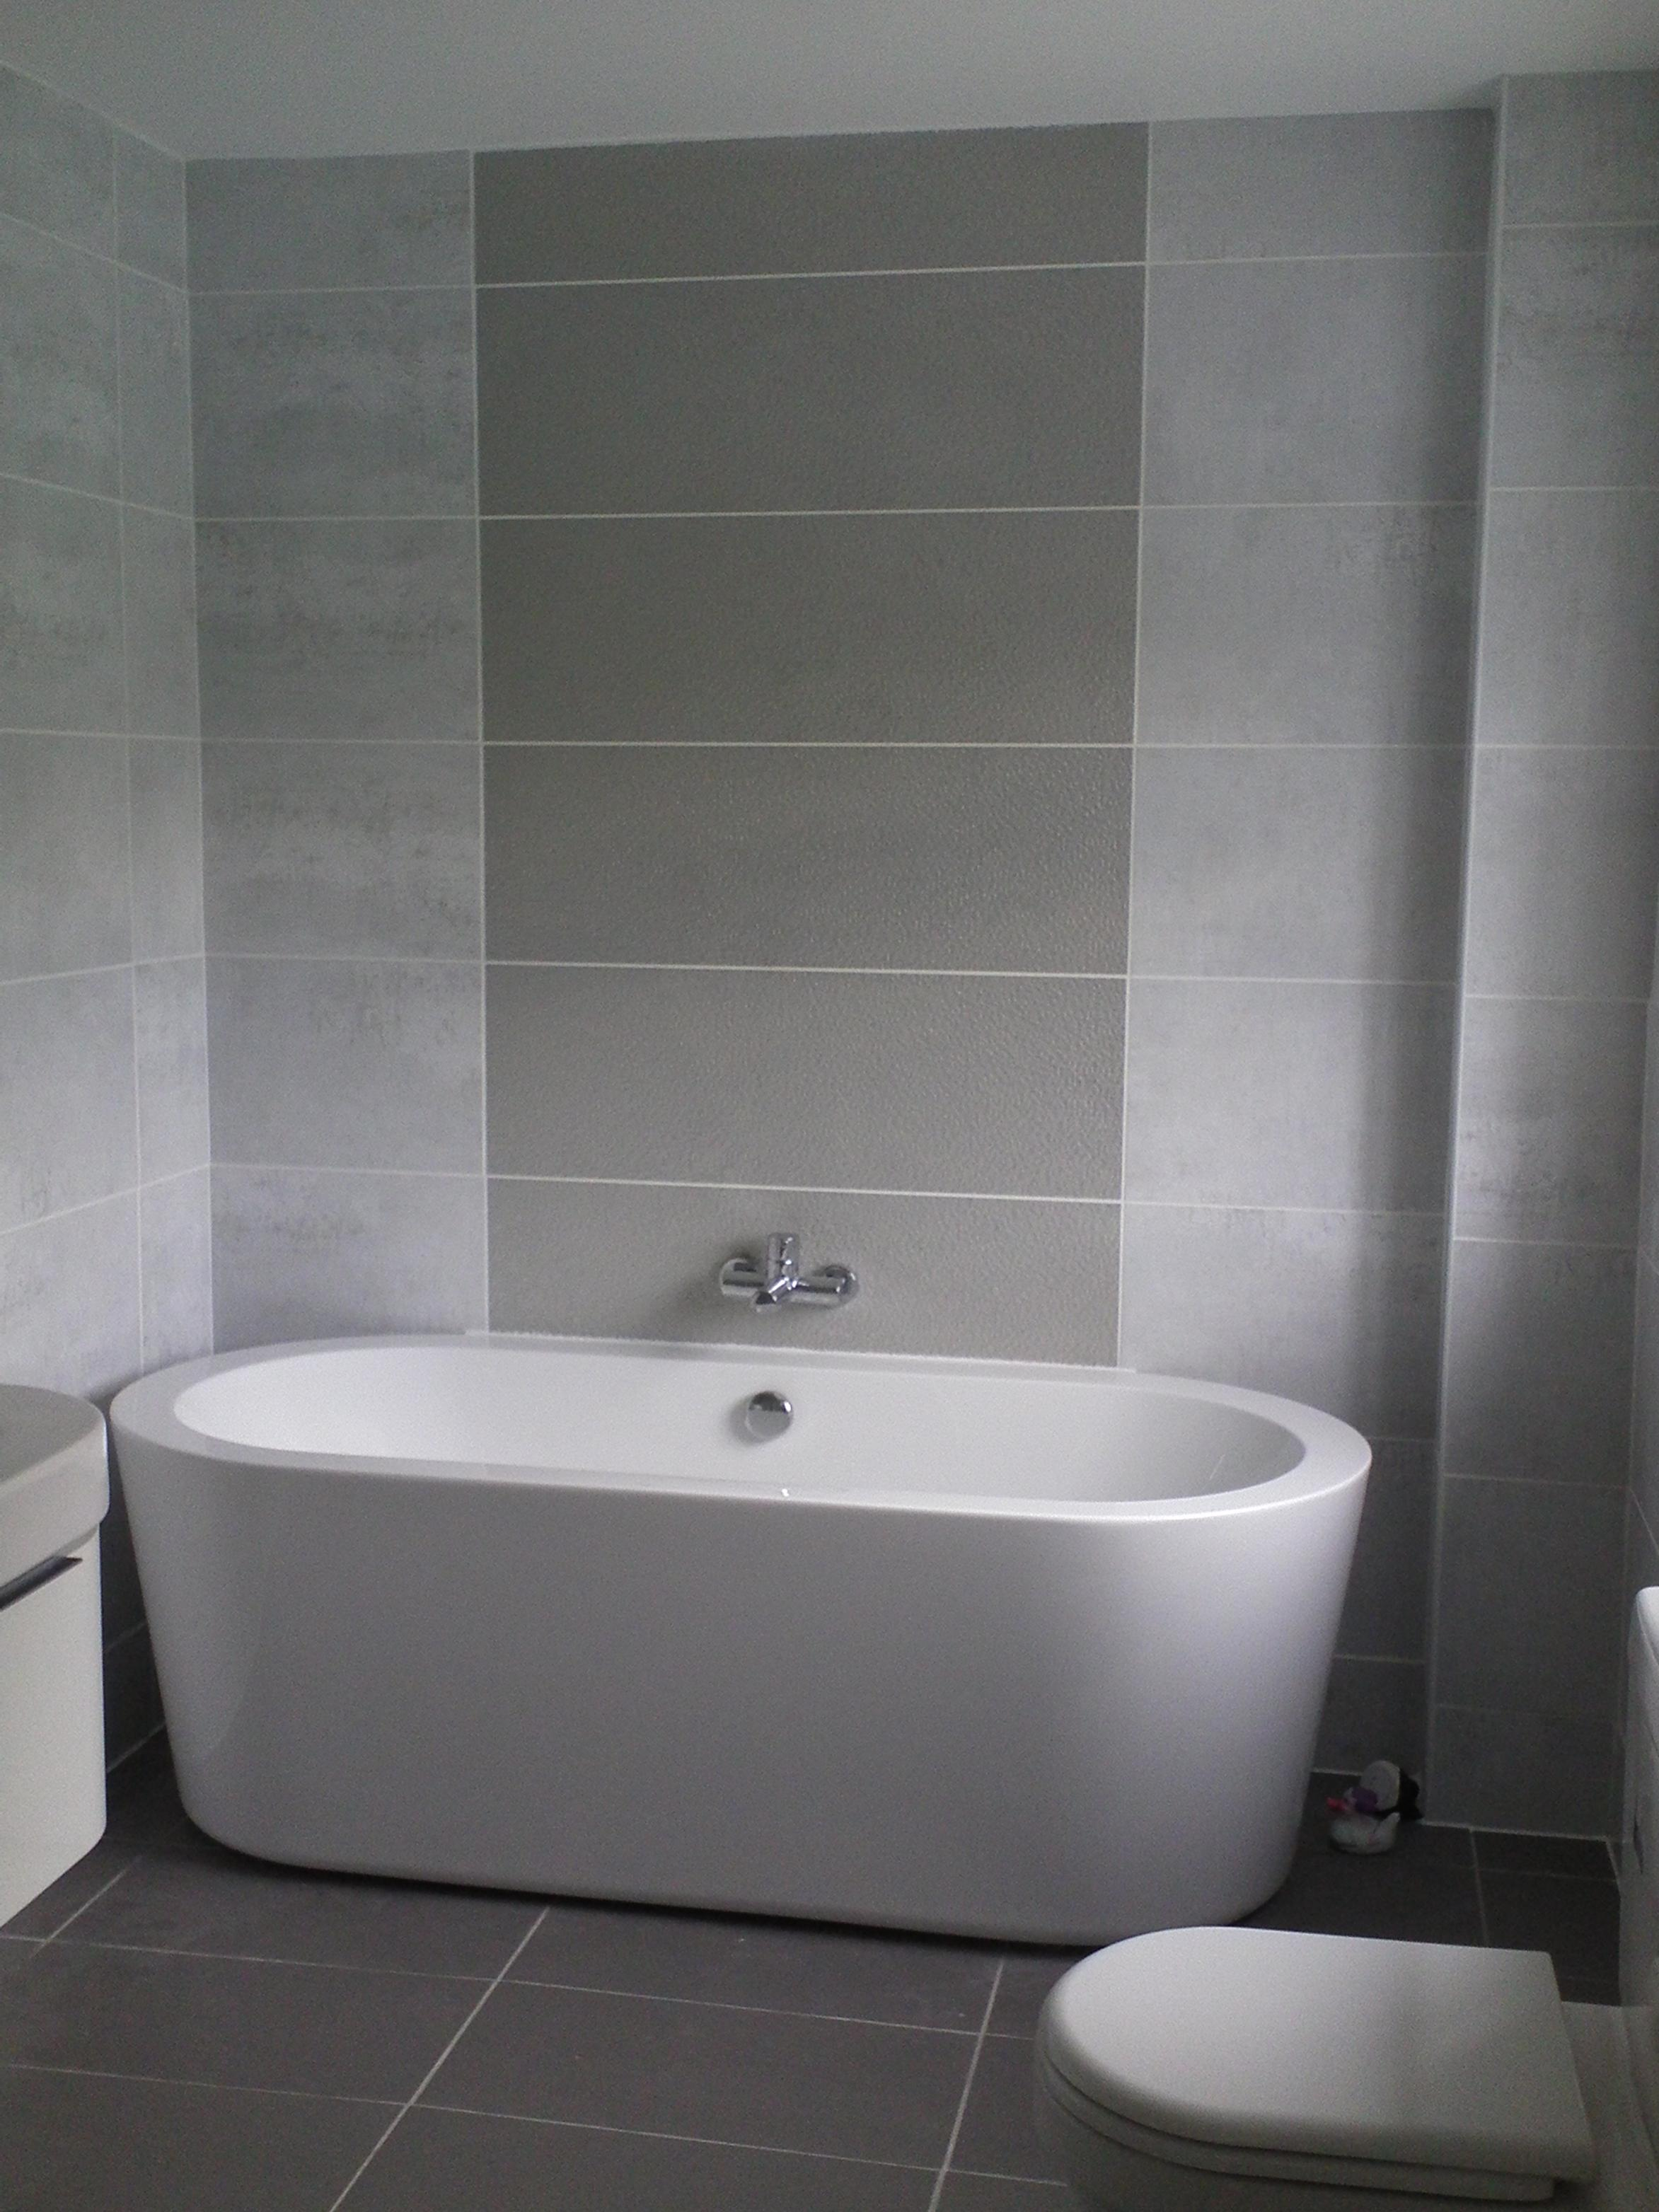 Bathroom Tiles Design Grey : Grey wall tiles for bathroom ideas and pictures